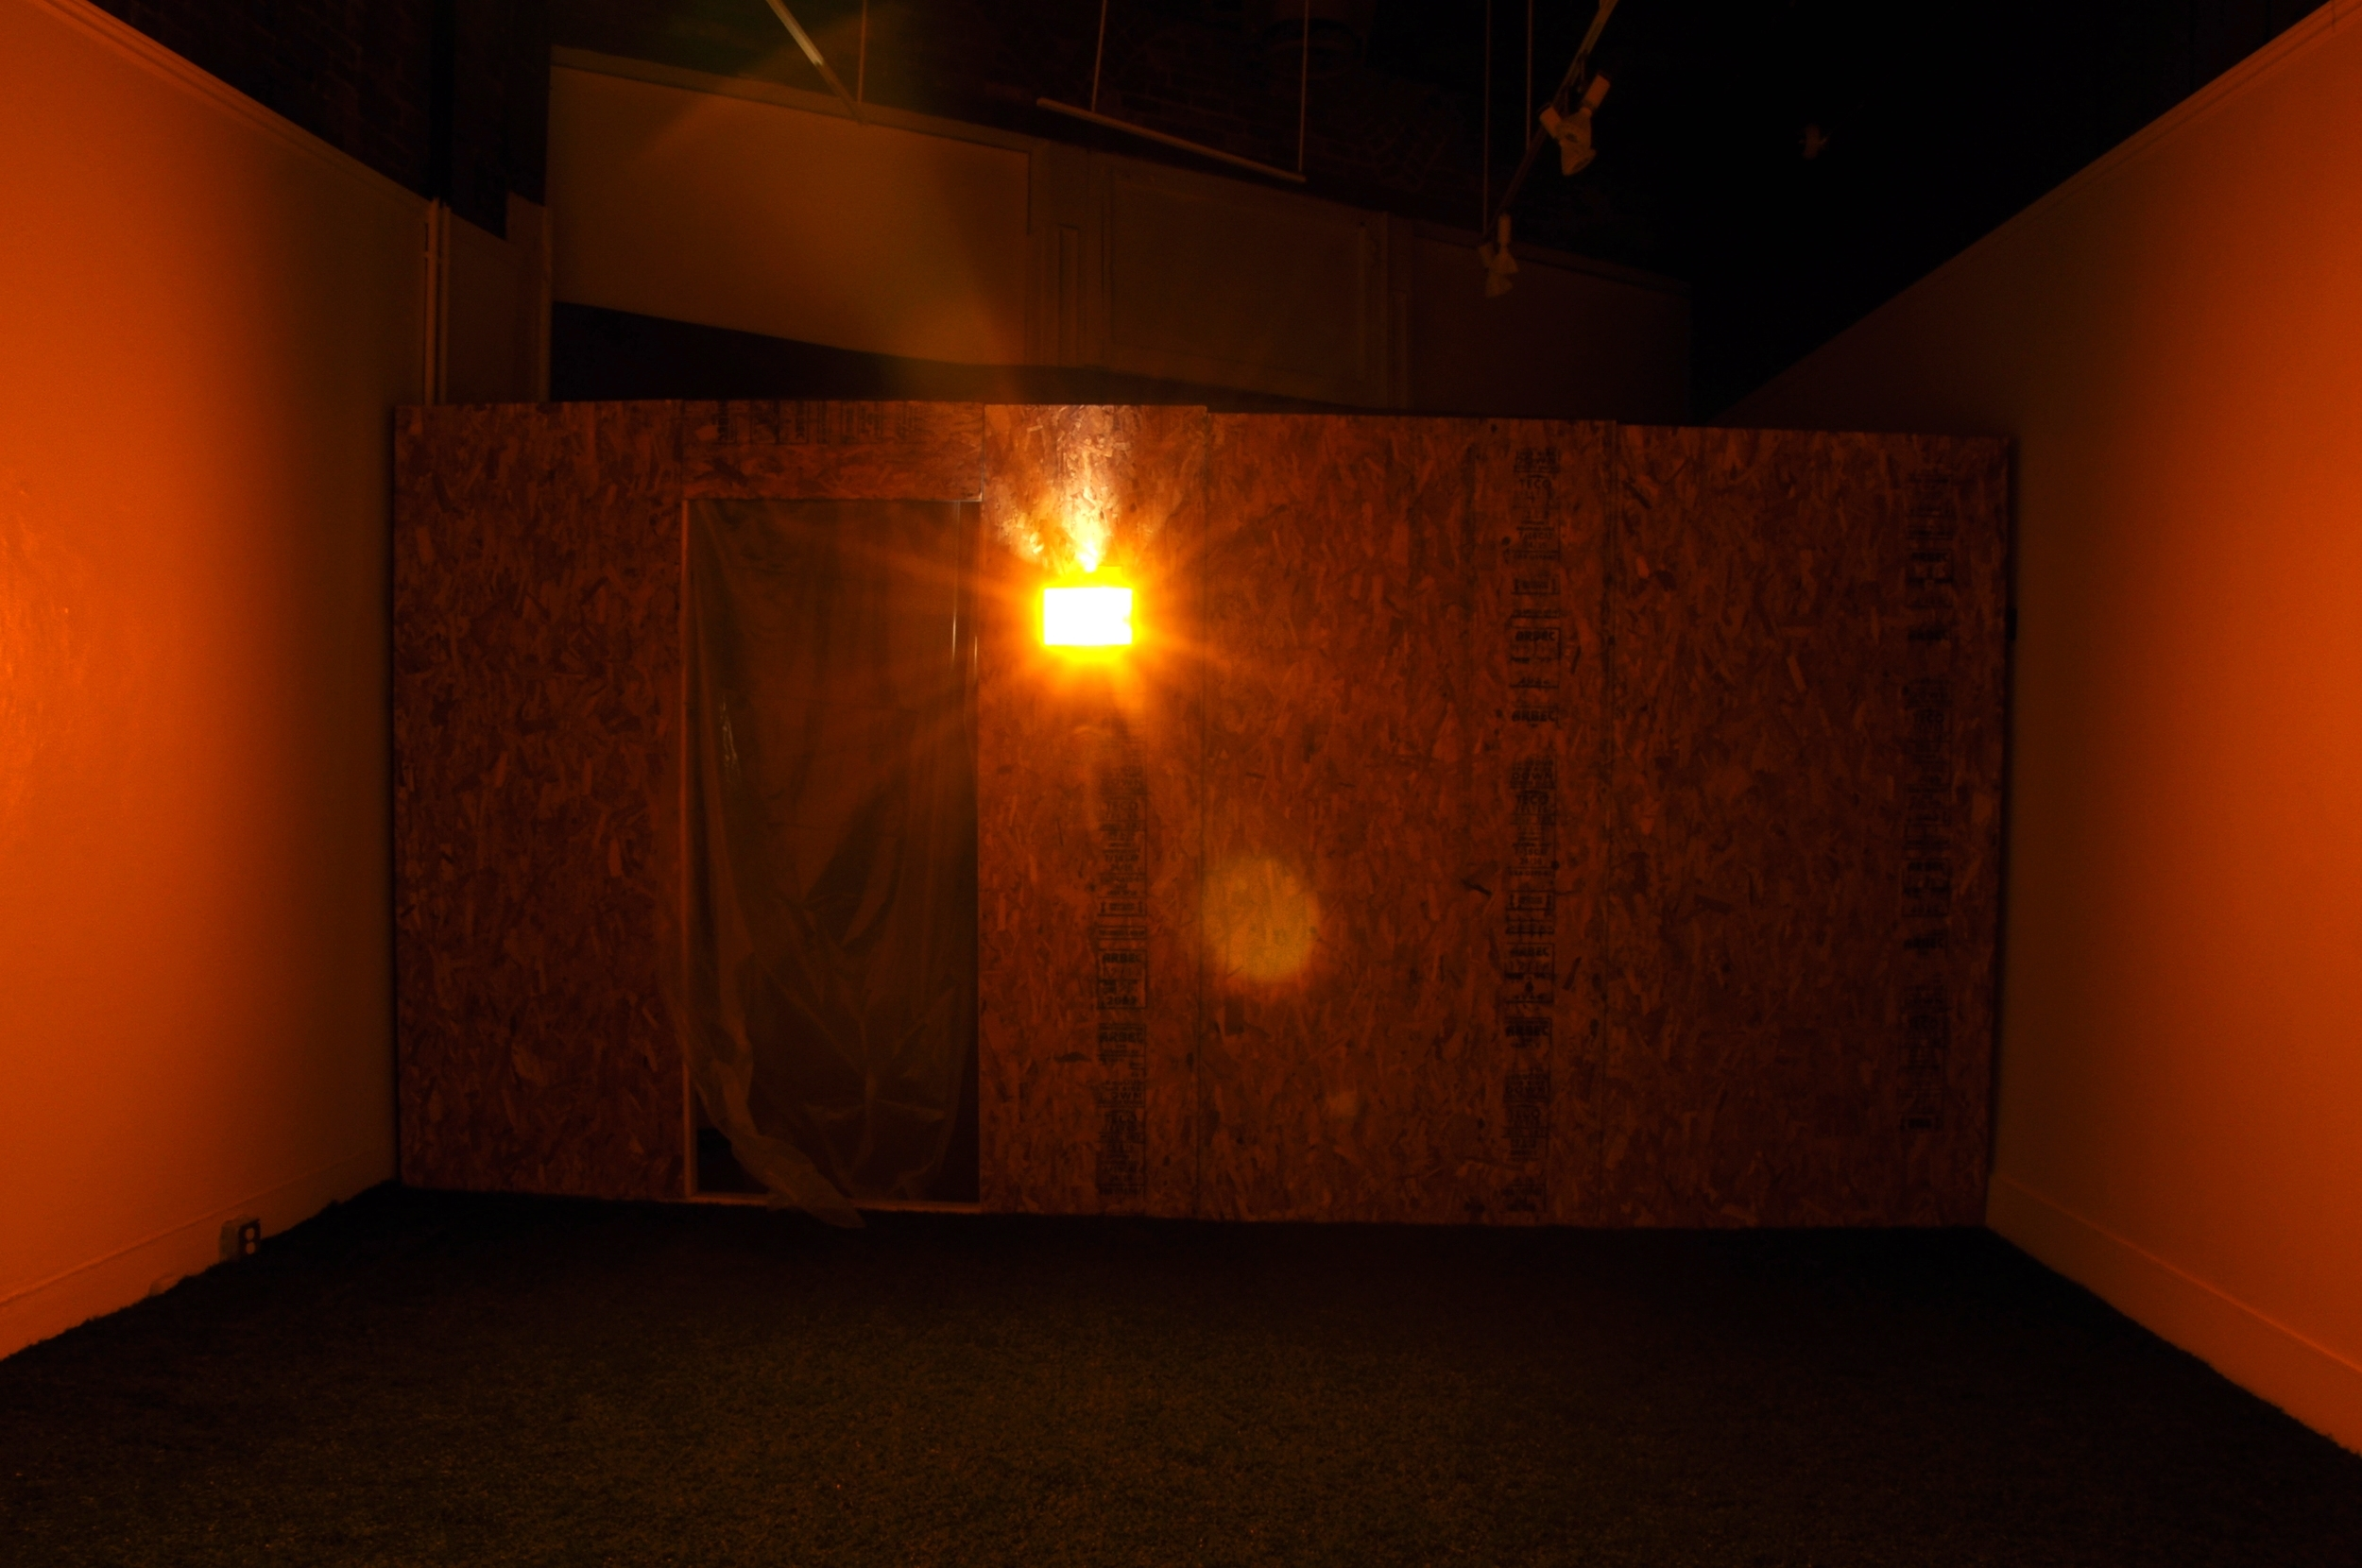 Disorientated Concessions (3 AM) , 2013, Chipboard, wood, tar paper, vapour barrier, fake grass, acrylic, motion detector  Dimensions: 4.9m x 8.2m x 4.8m